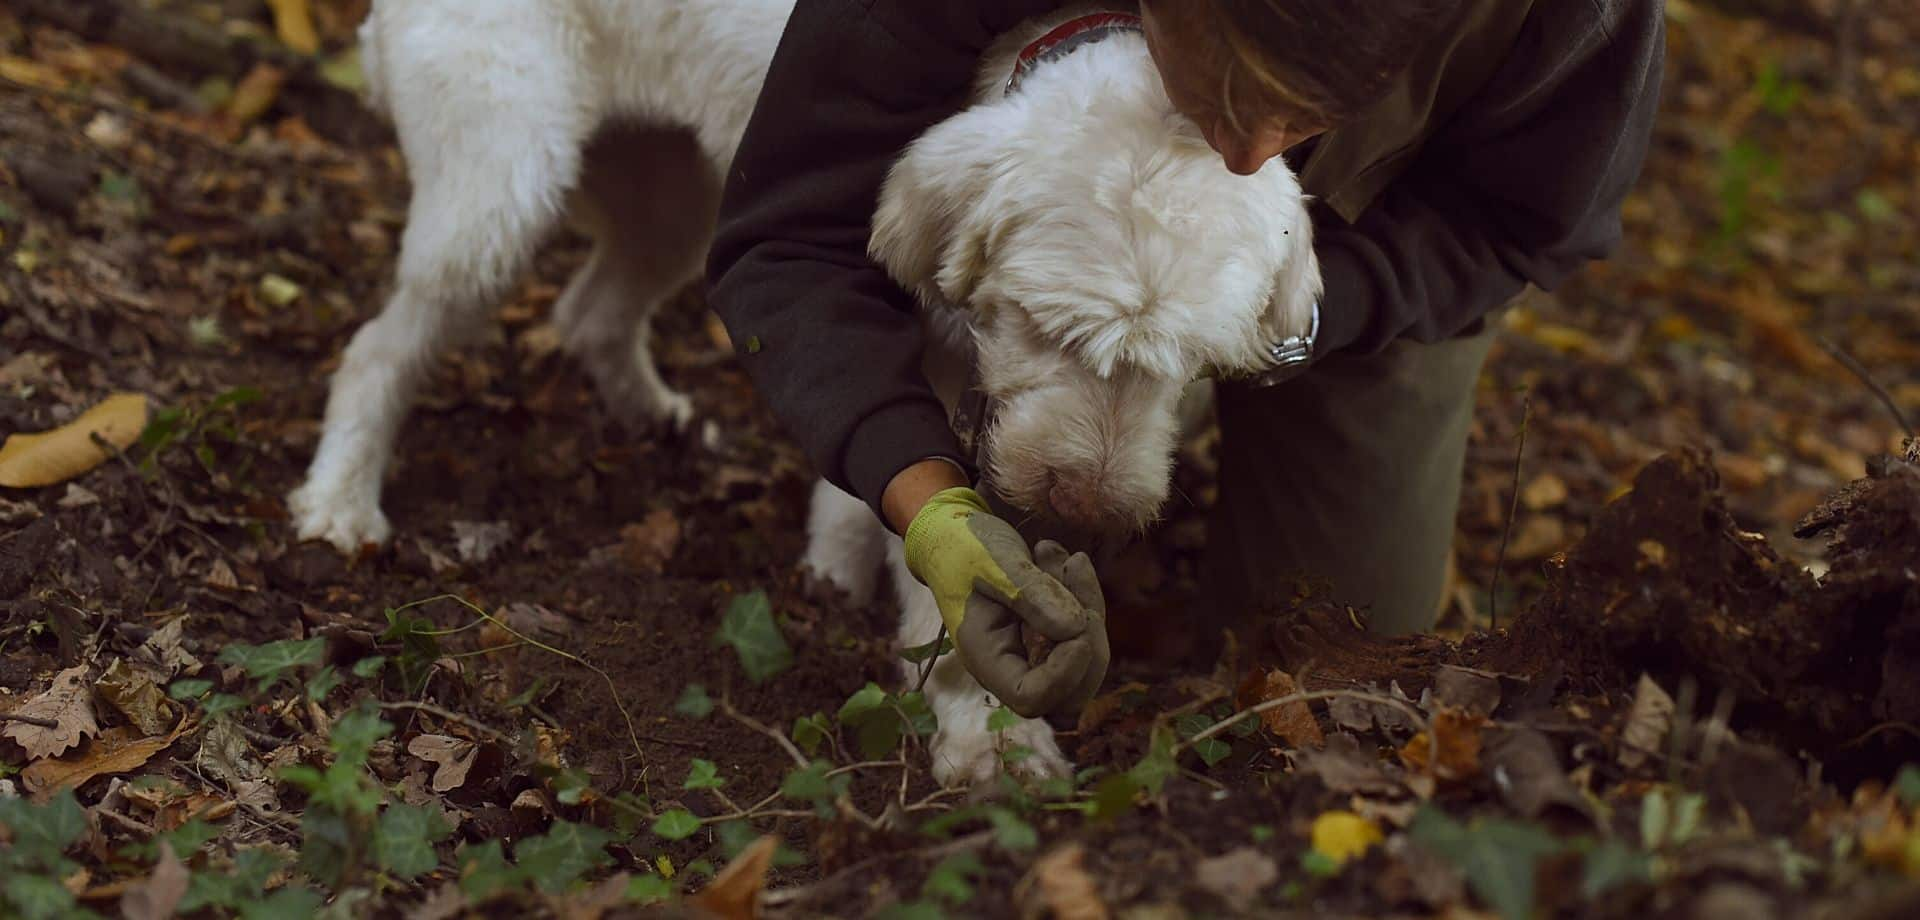 White truffle hunting in Alba